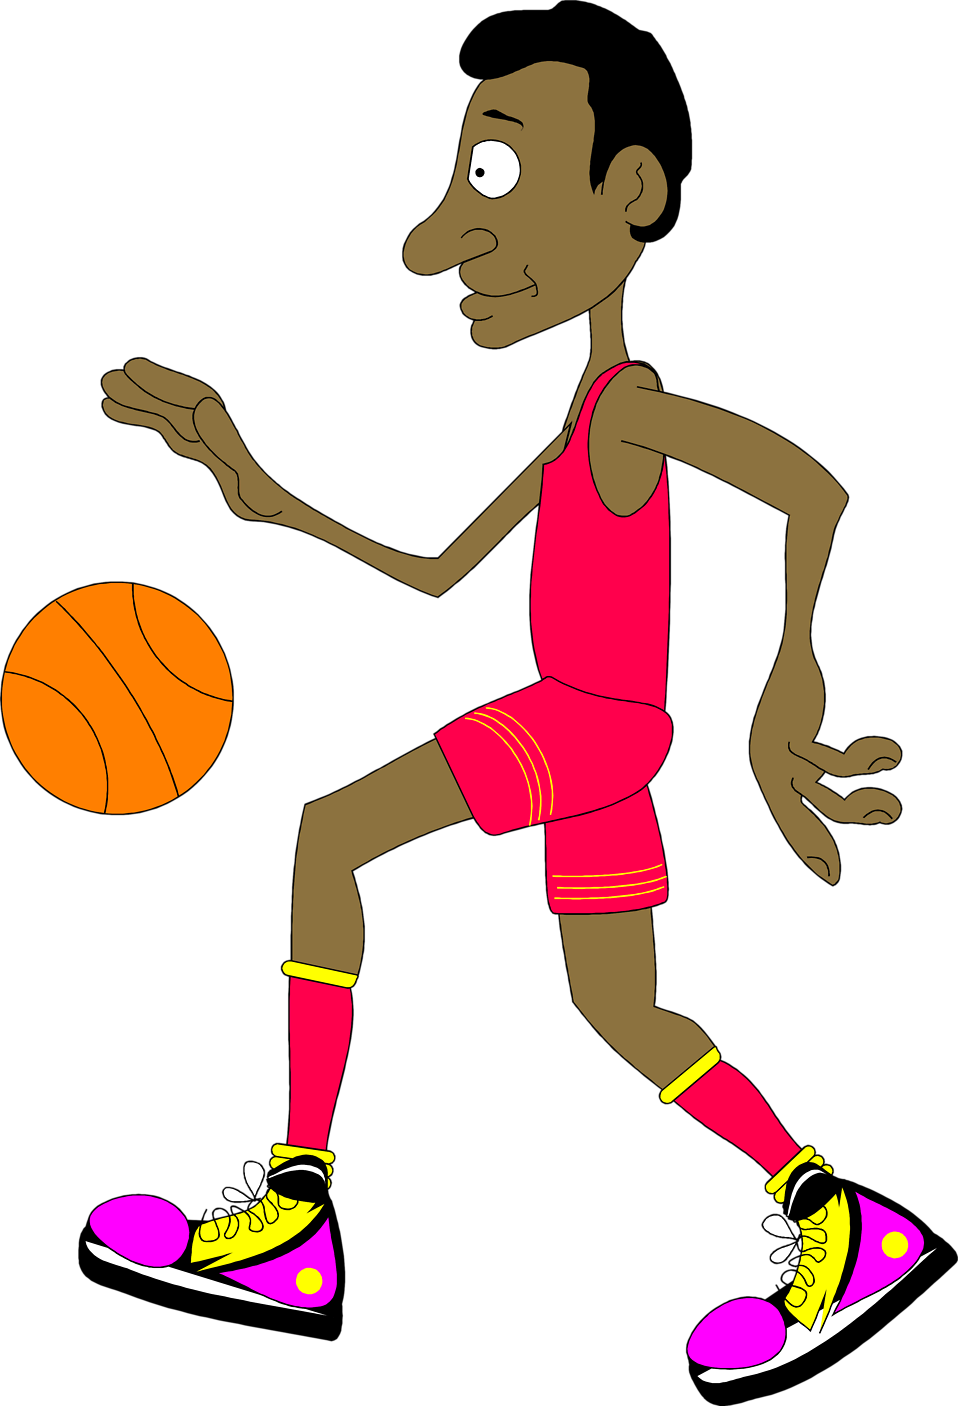 Basketball players clipart free clipart free library Basketball | Free Stock Photo | Illustration of a basketball player ... clipart free library